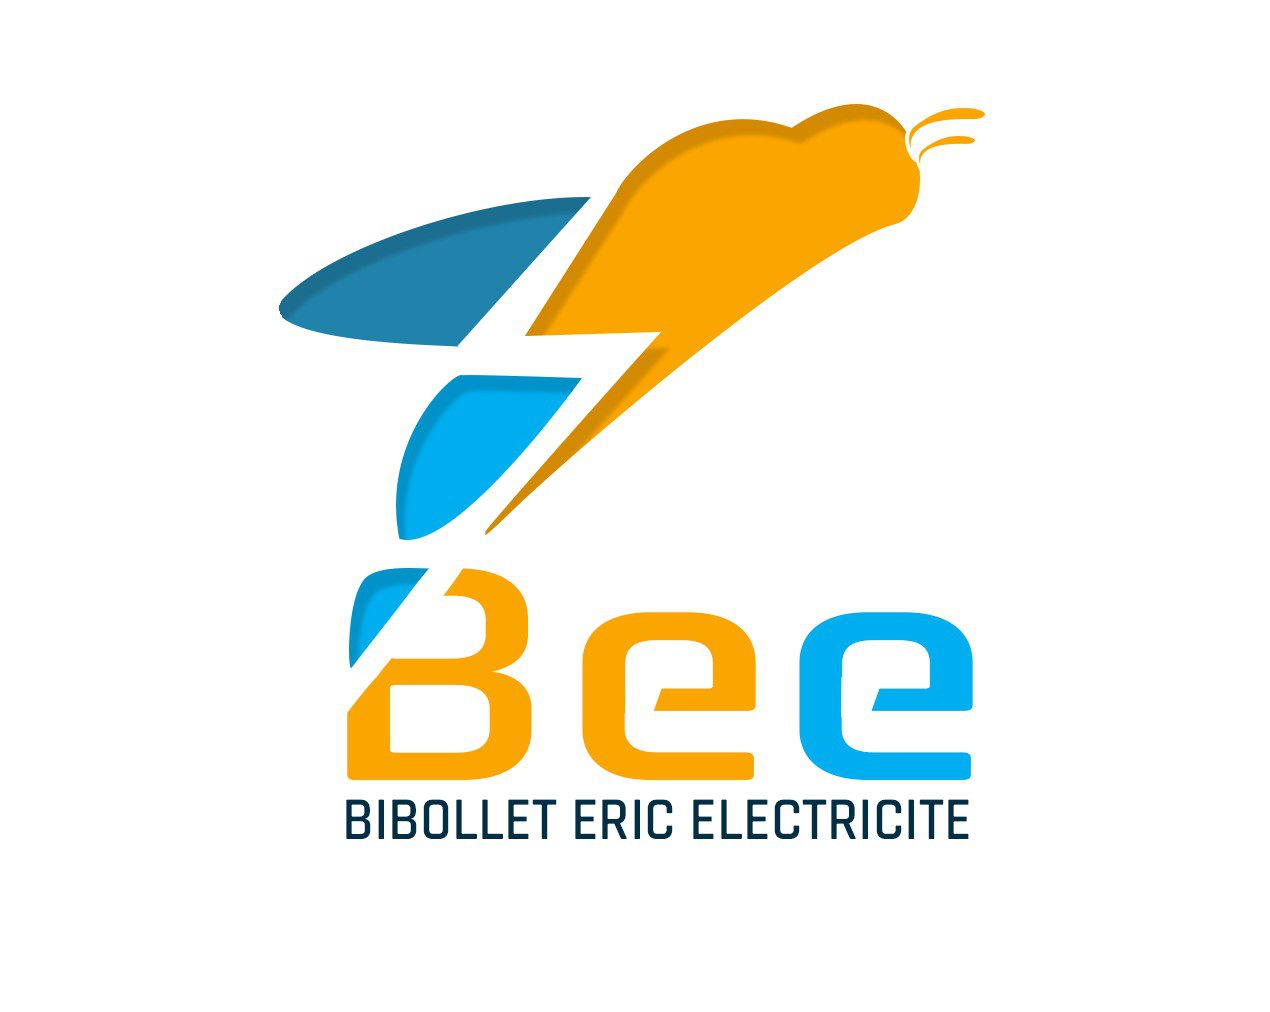 Beelectricite